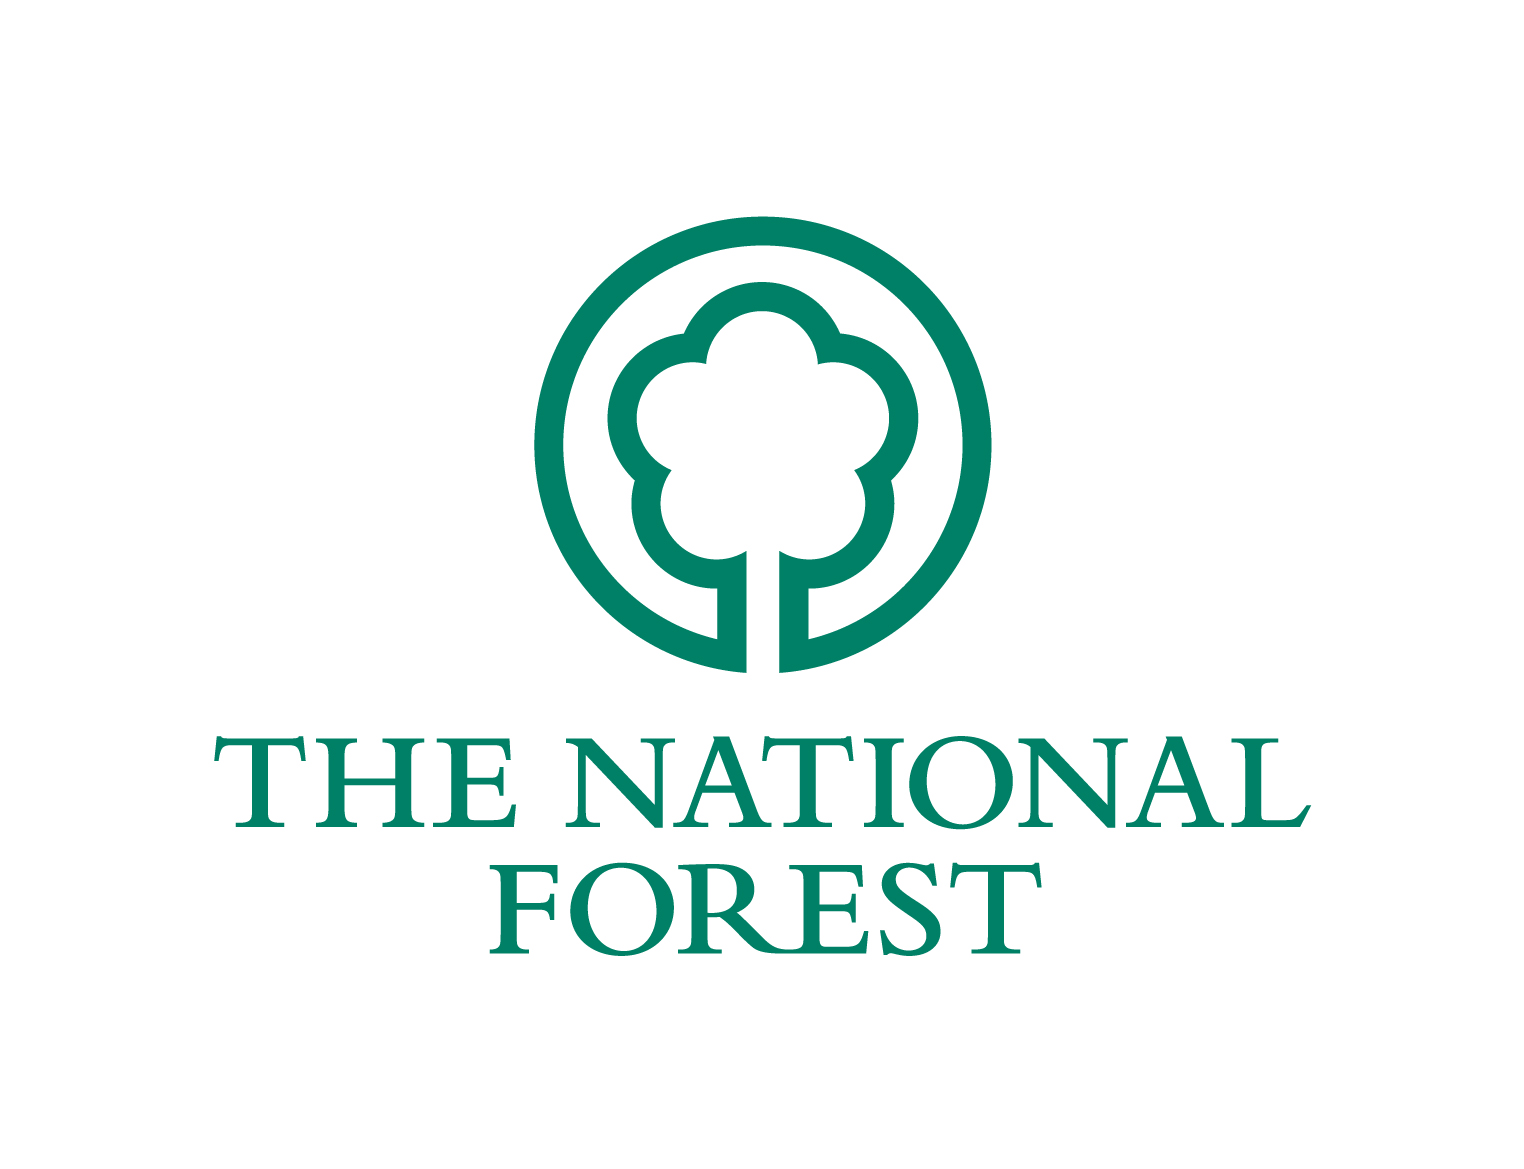 The National Forest green